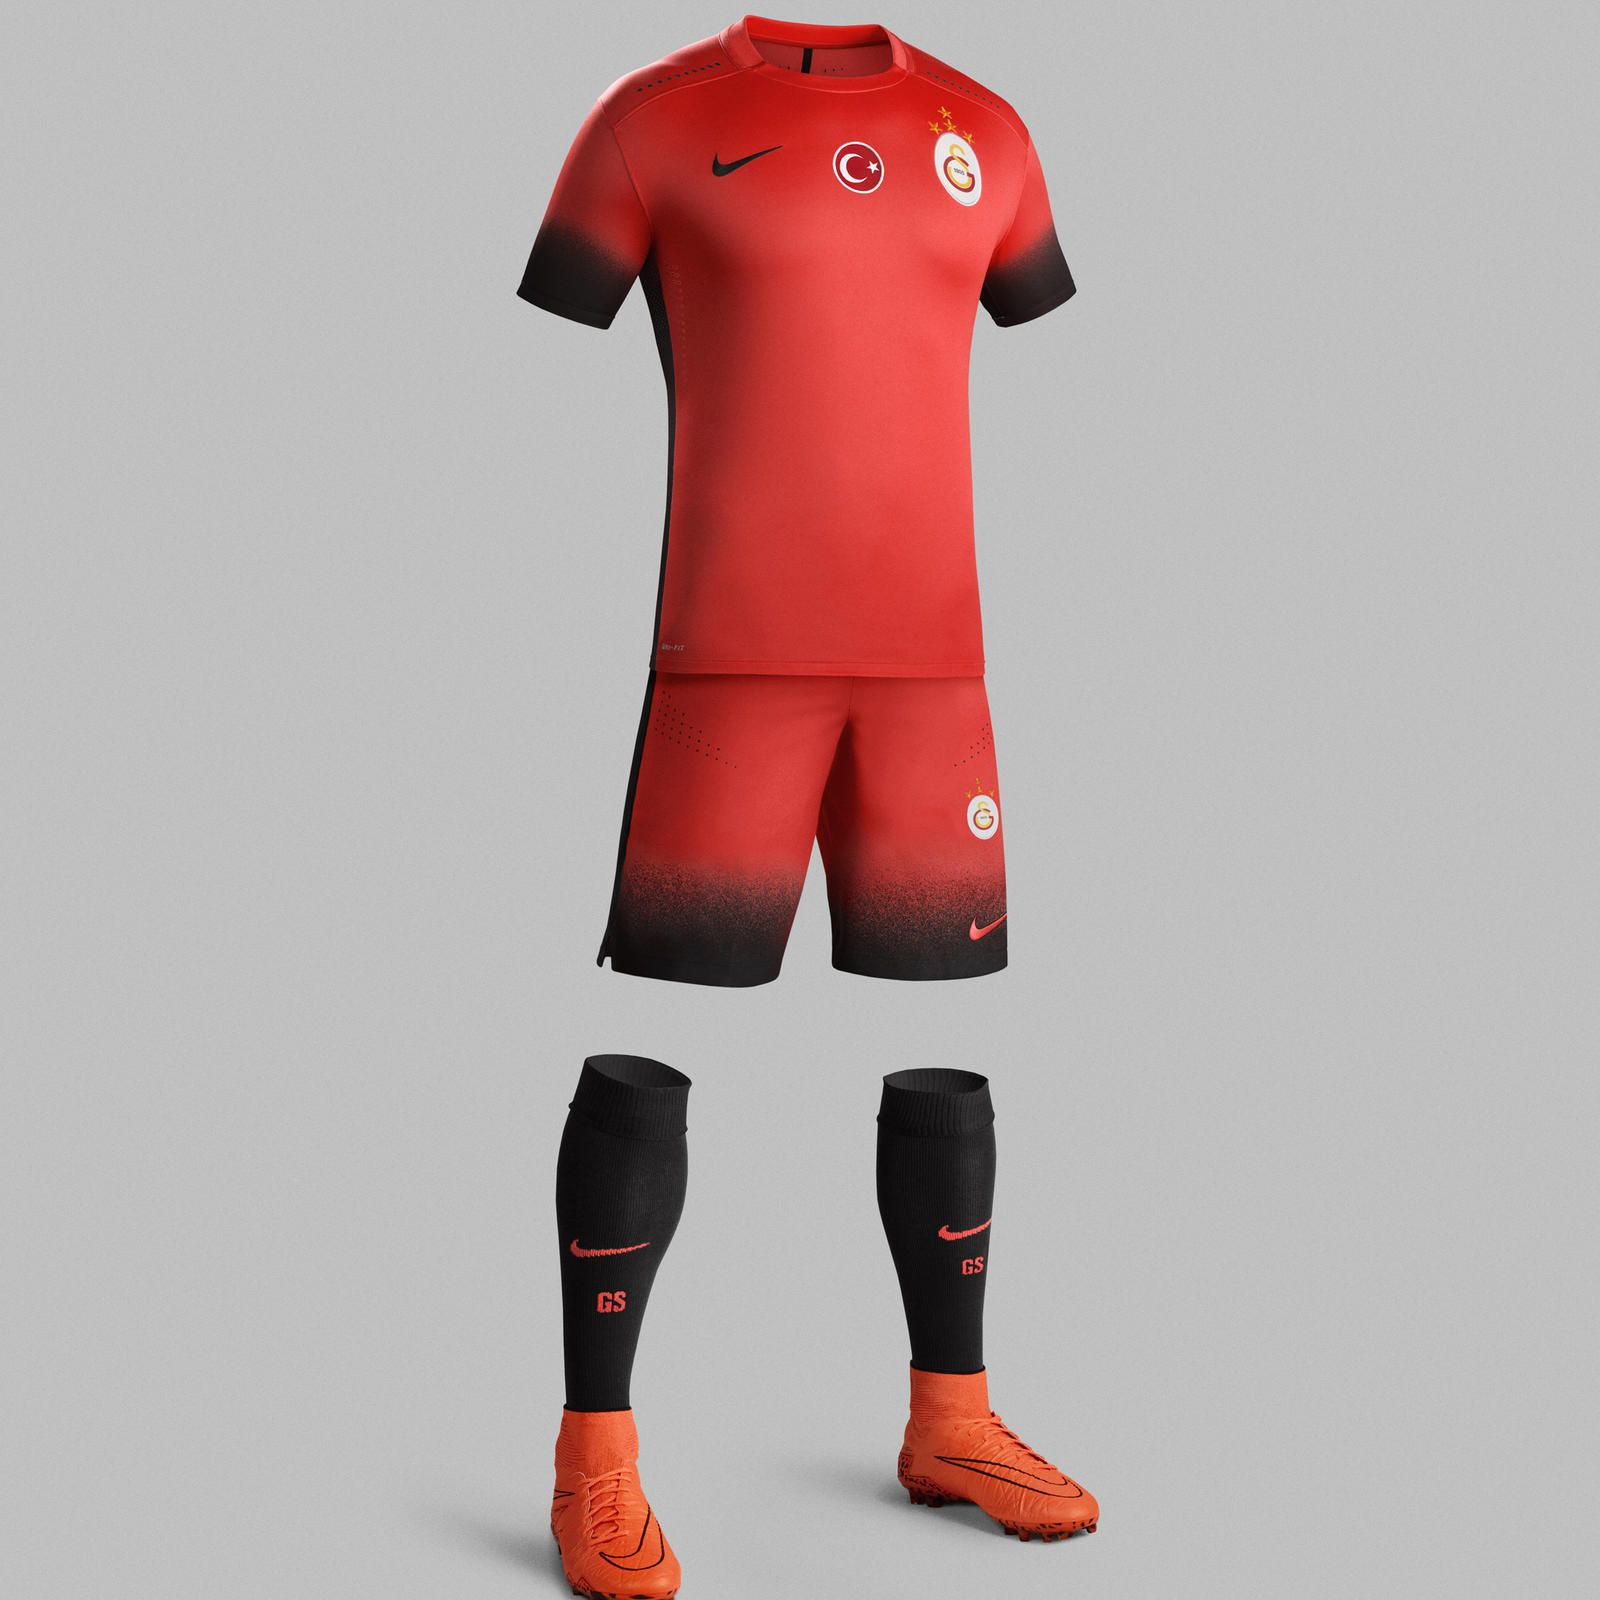 Nike News - Galatasaray Introduces Striking Red Look to Kit Line-Up